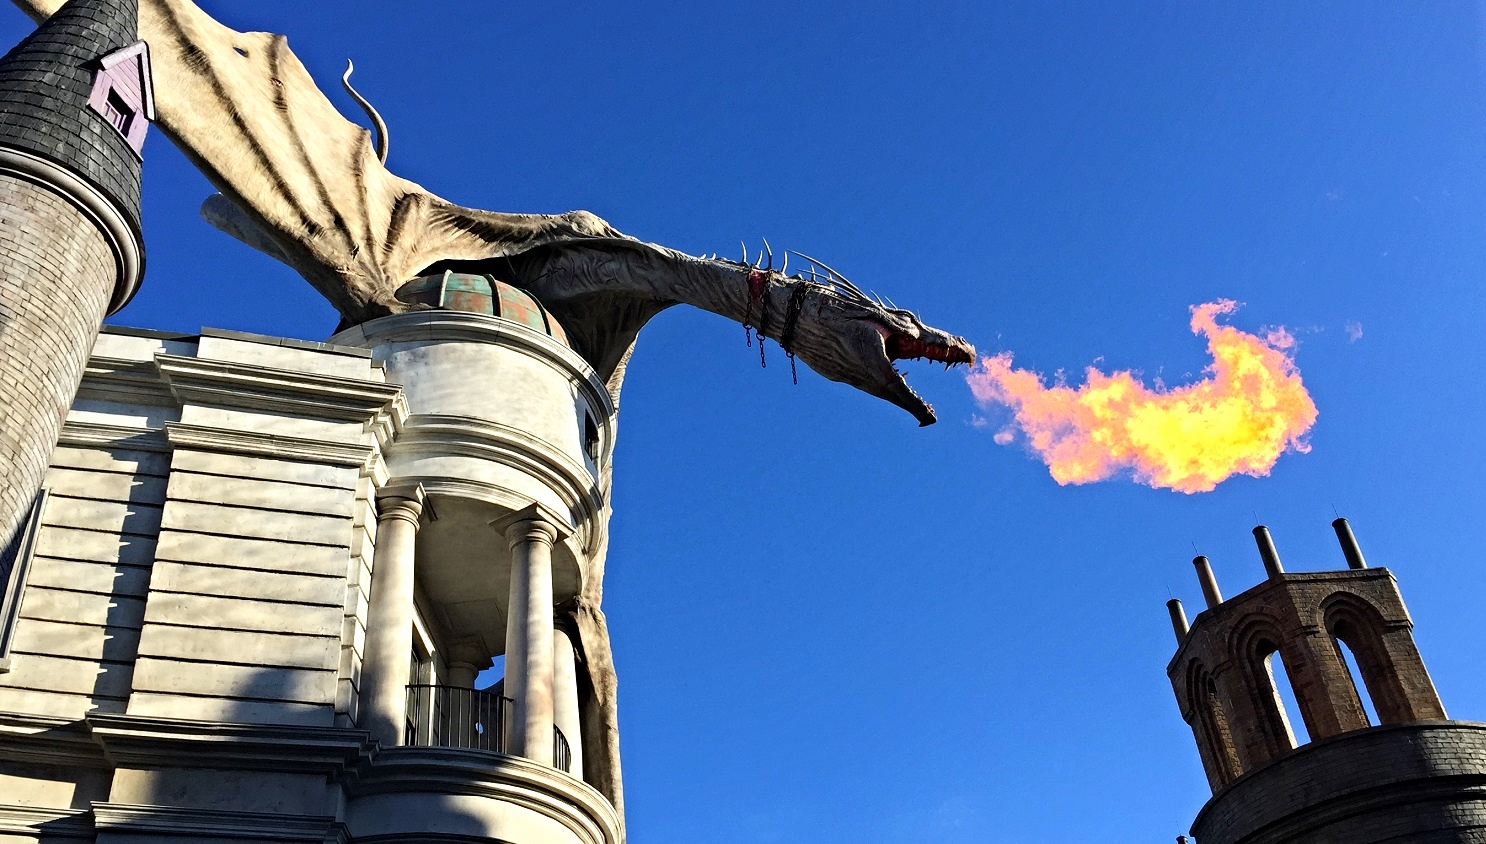 The Wizarding World of Harry Potter - Diagon Alley.